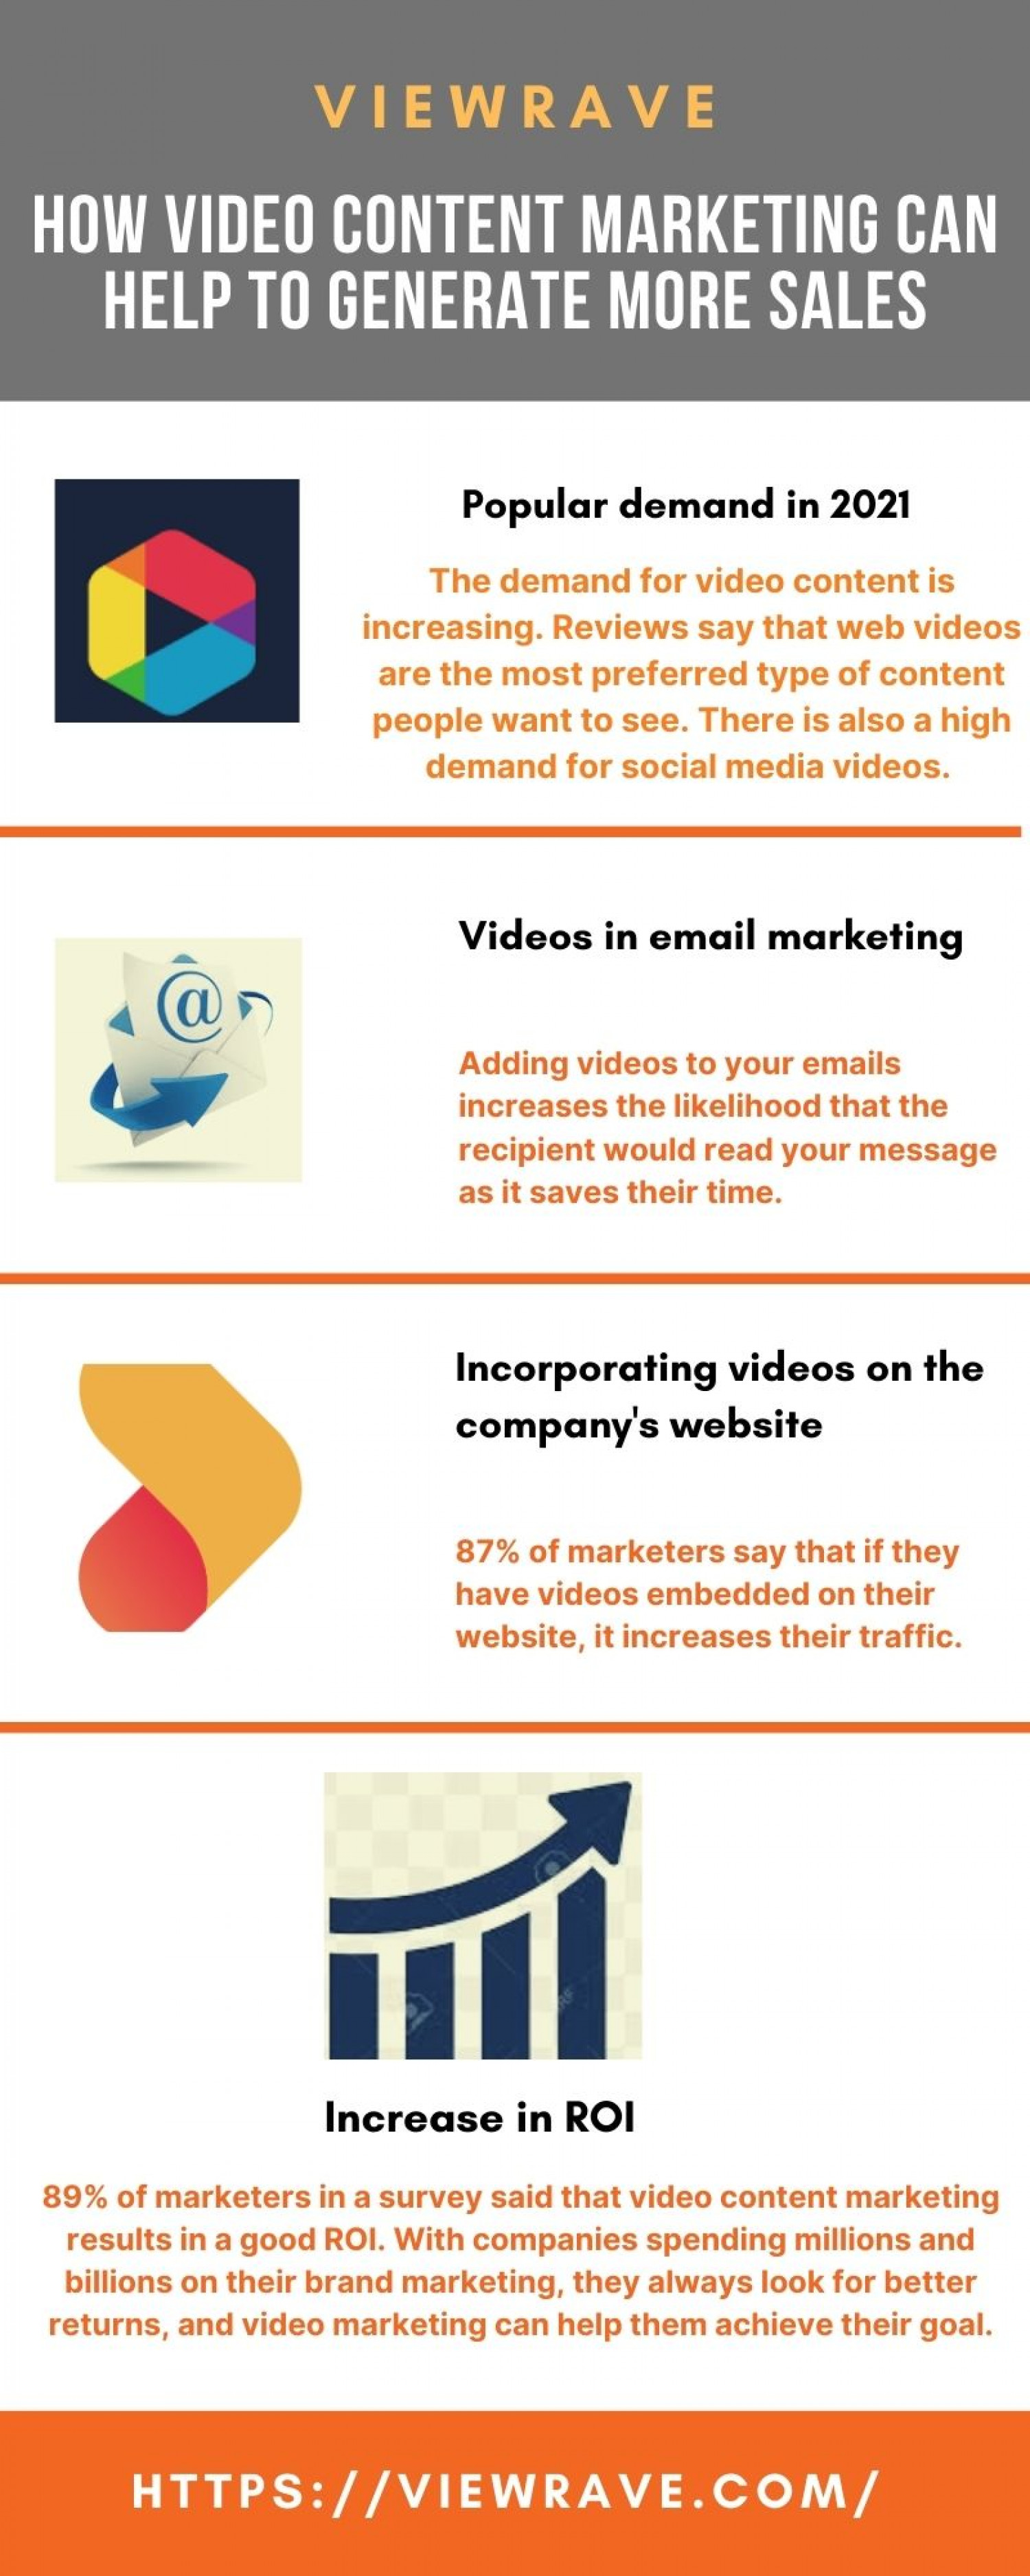 How Video Content Marketing Can Help to Generate More Sales Infographic